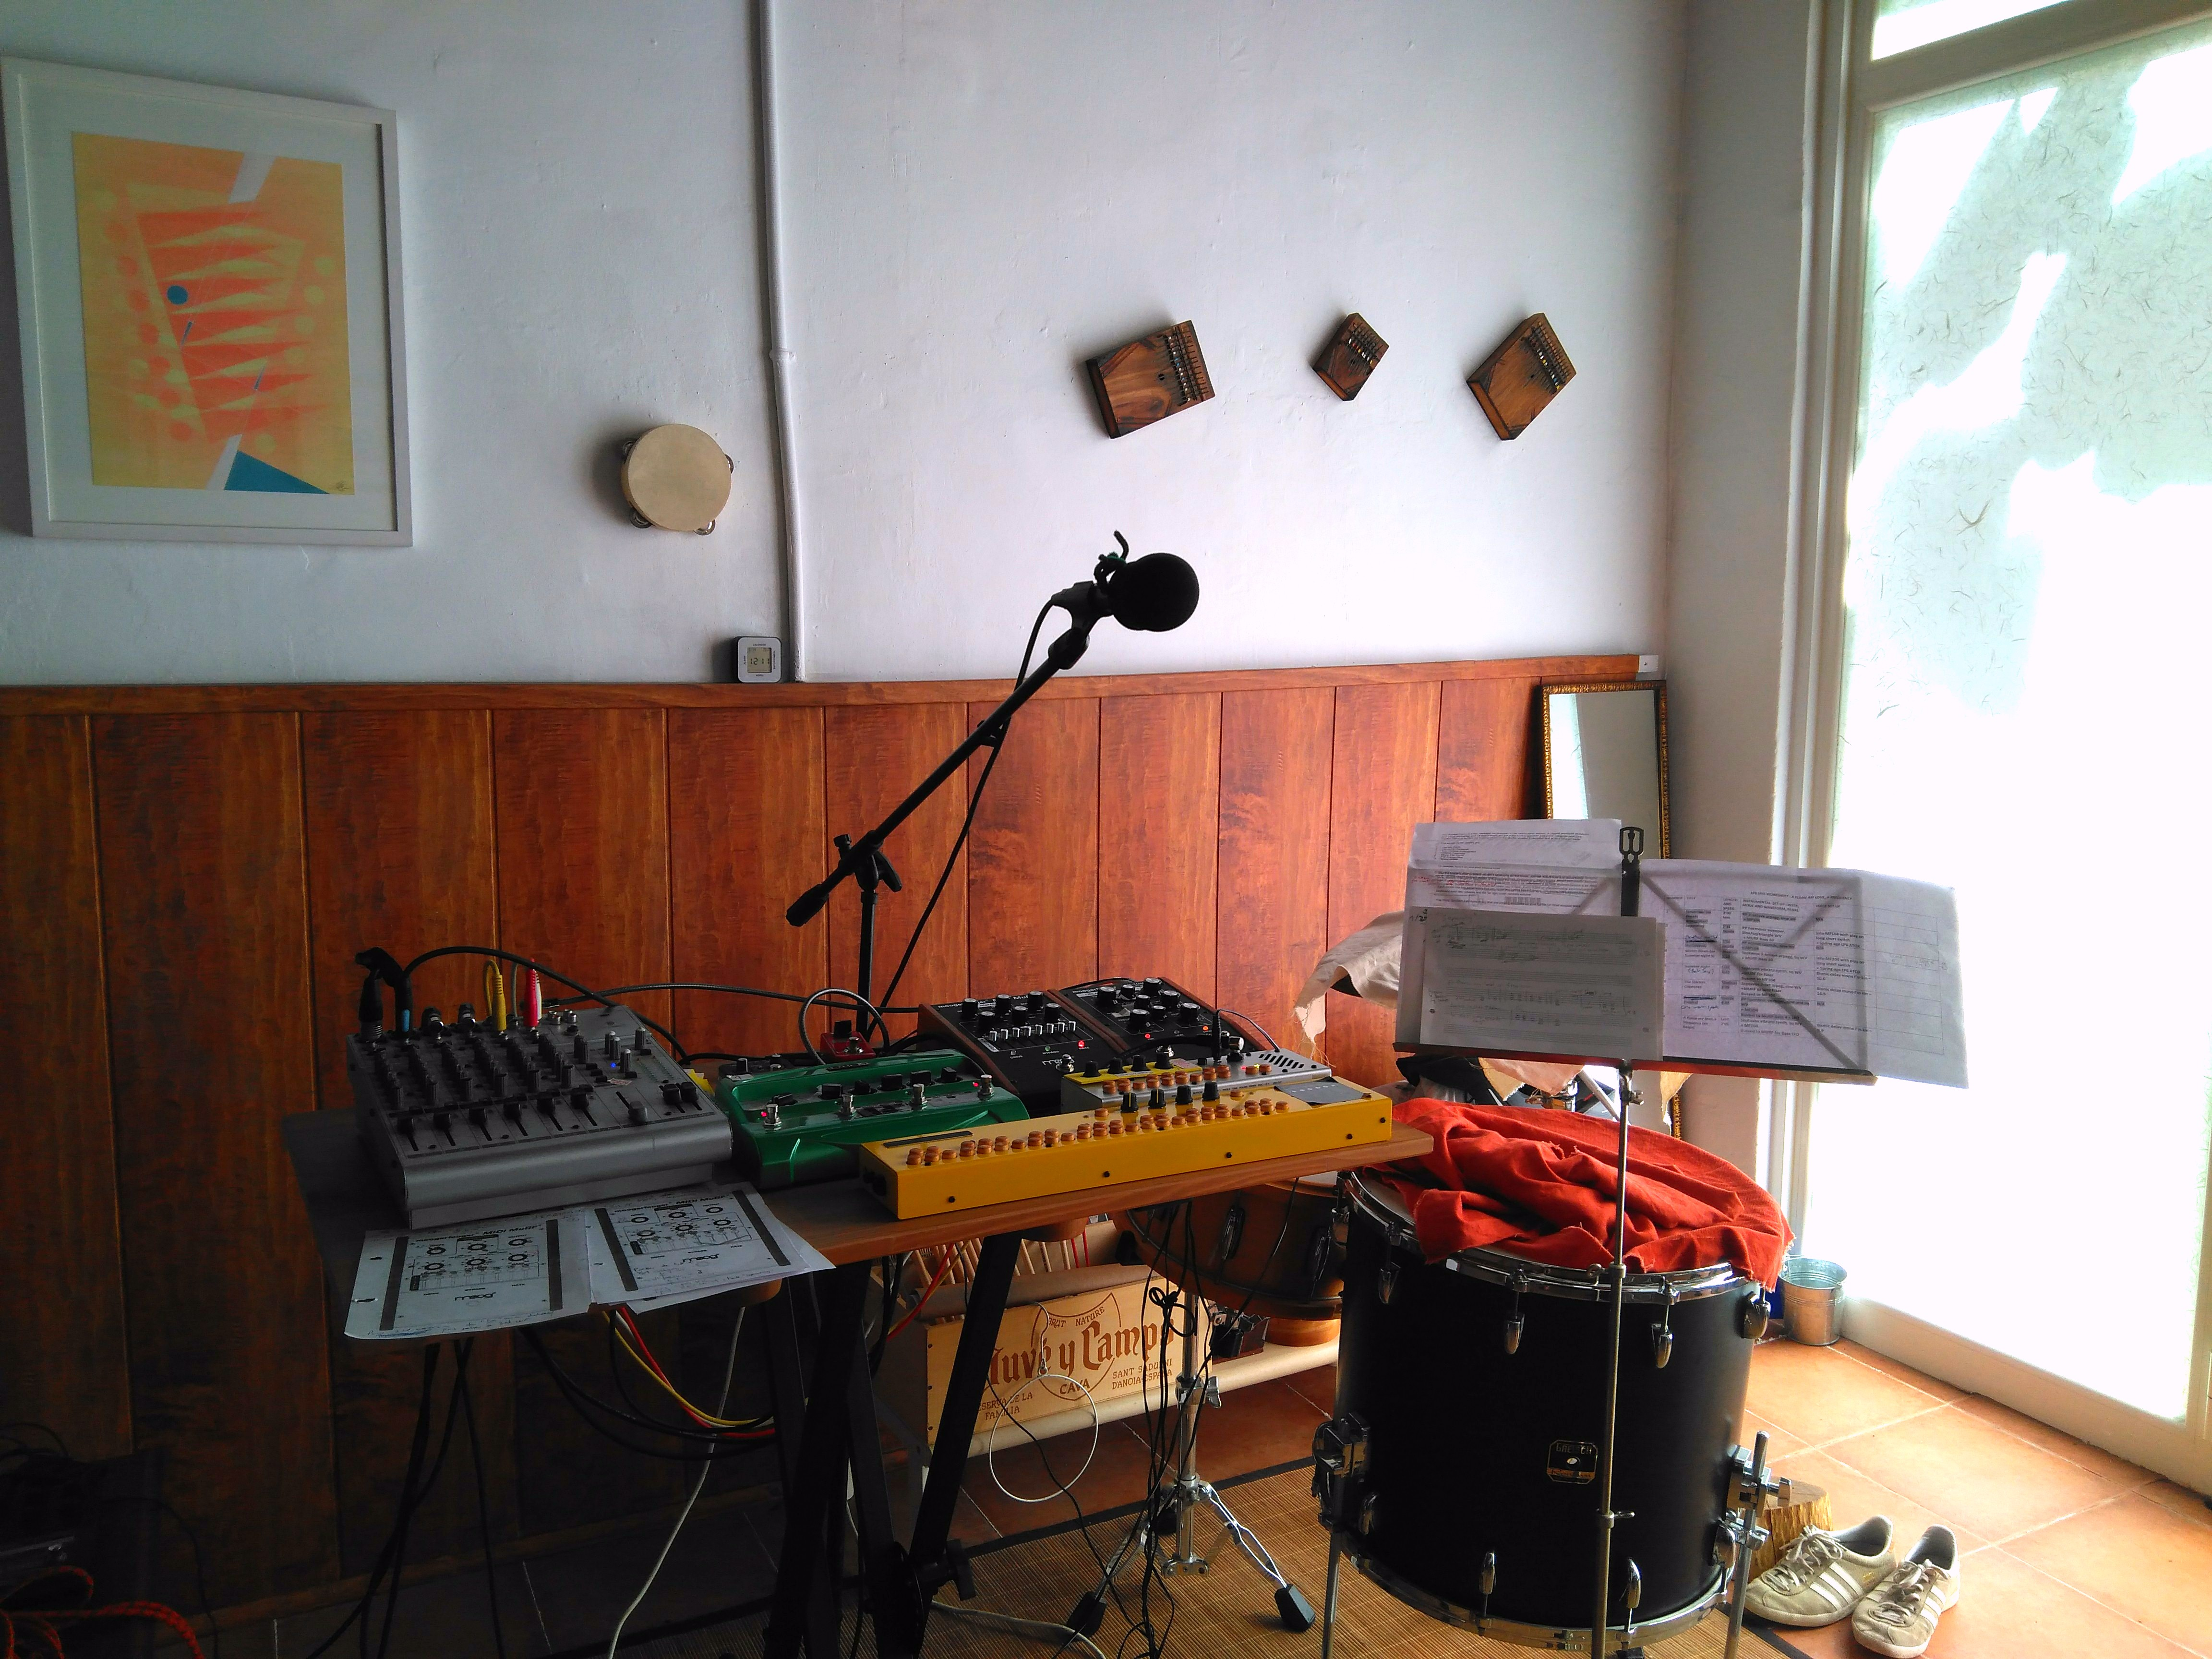 August 2017 Colleen Studio Live Recording Setup 2010 Made Up Of My Old Behringer Ub1204pro A Line 6 Dl4 Delay Tc Mini Hall Fame Reverb And Course The Two Critter Guitari Synths